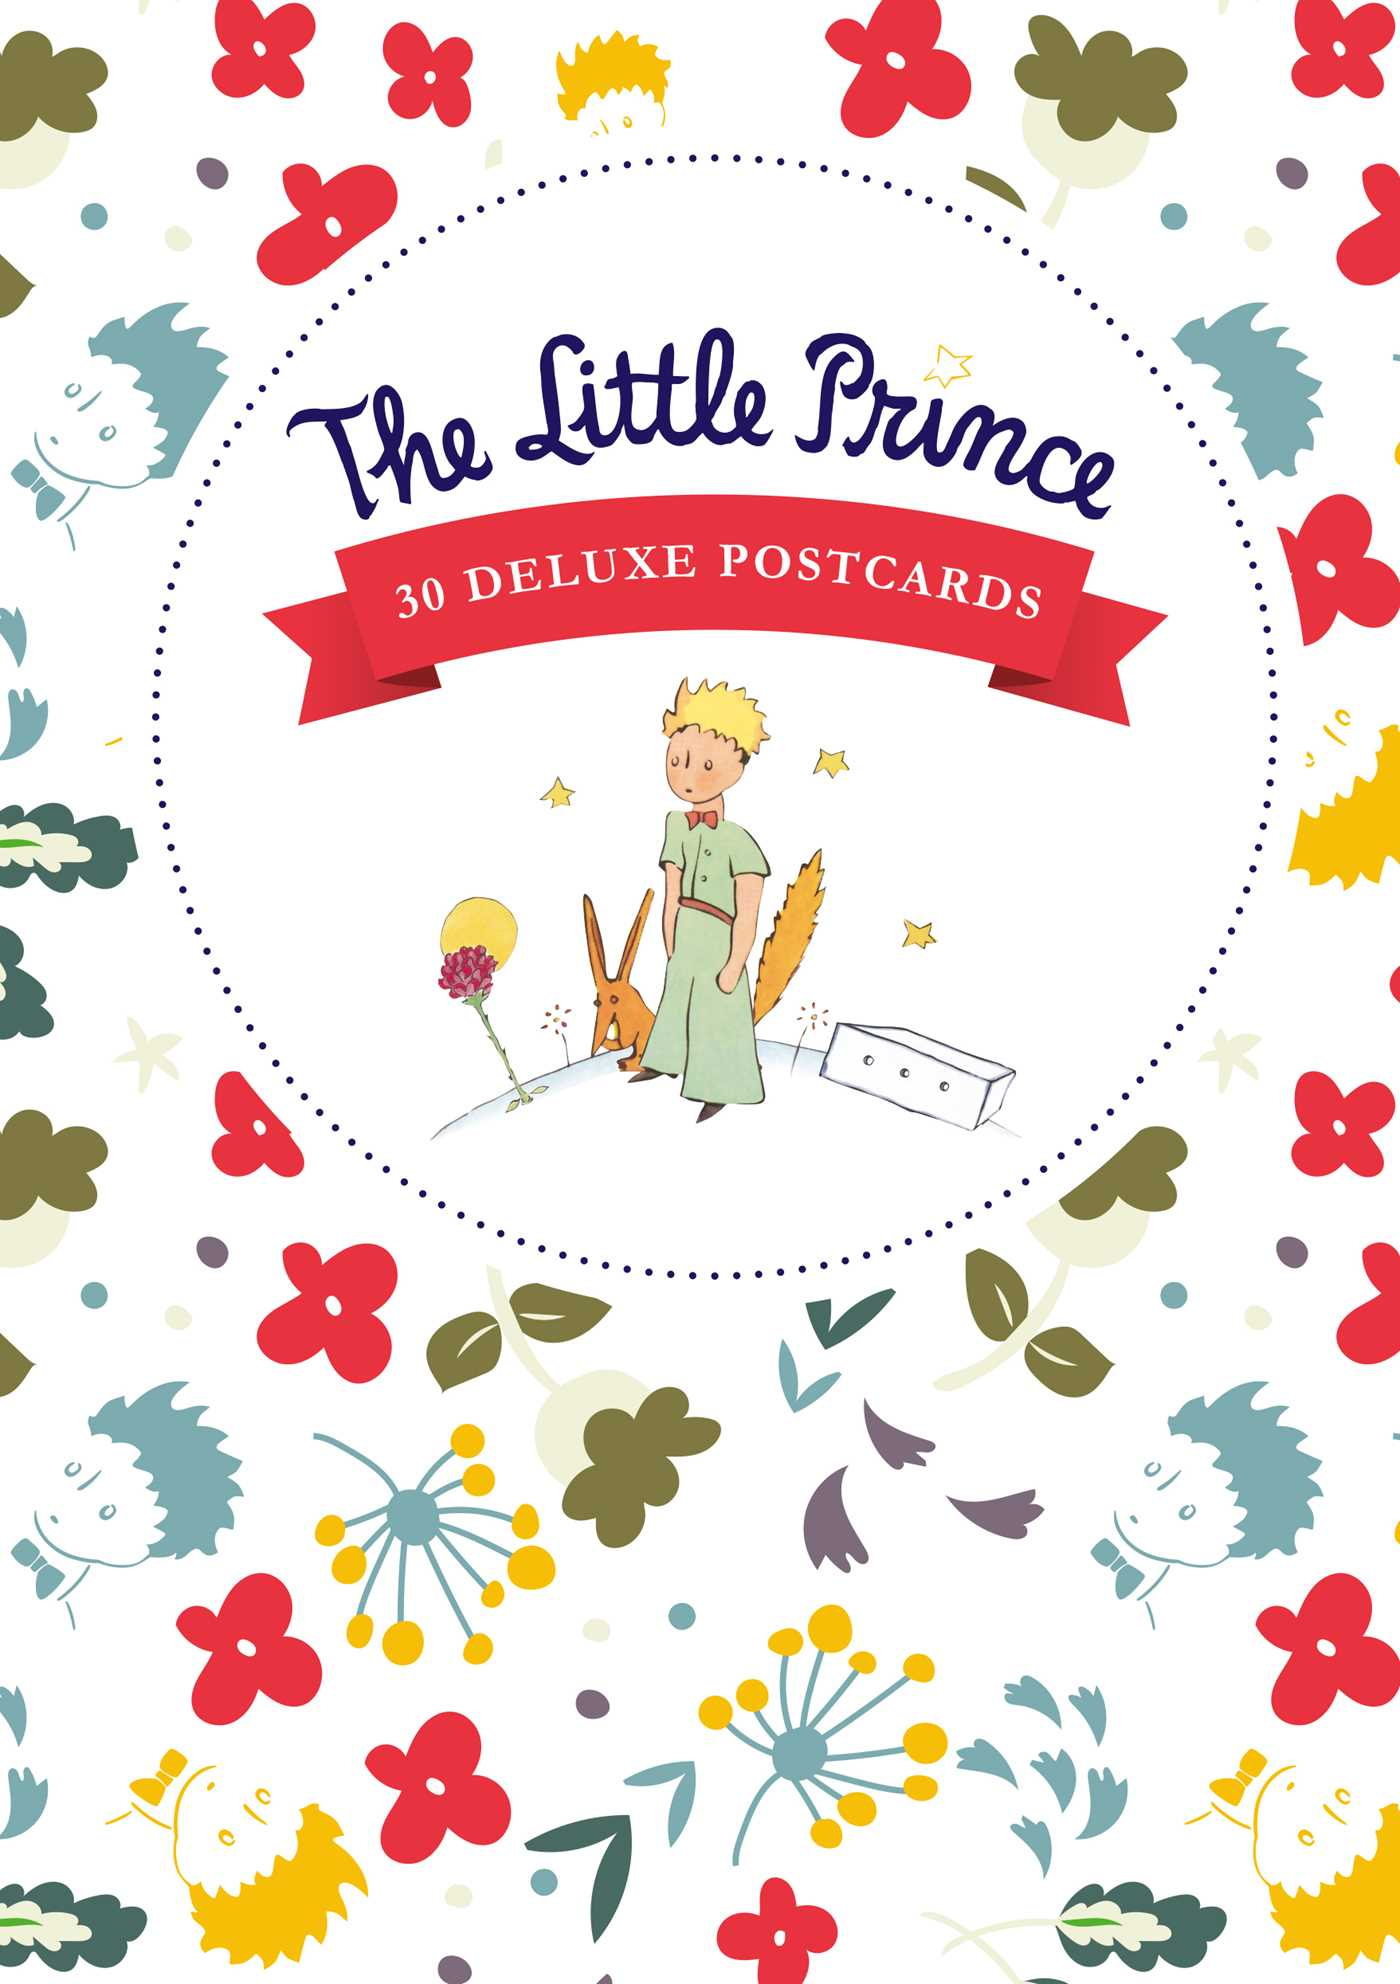 The little prince 9782374950136 hr